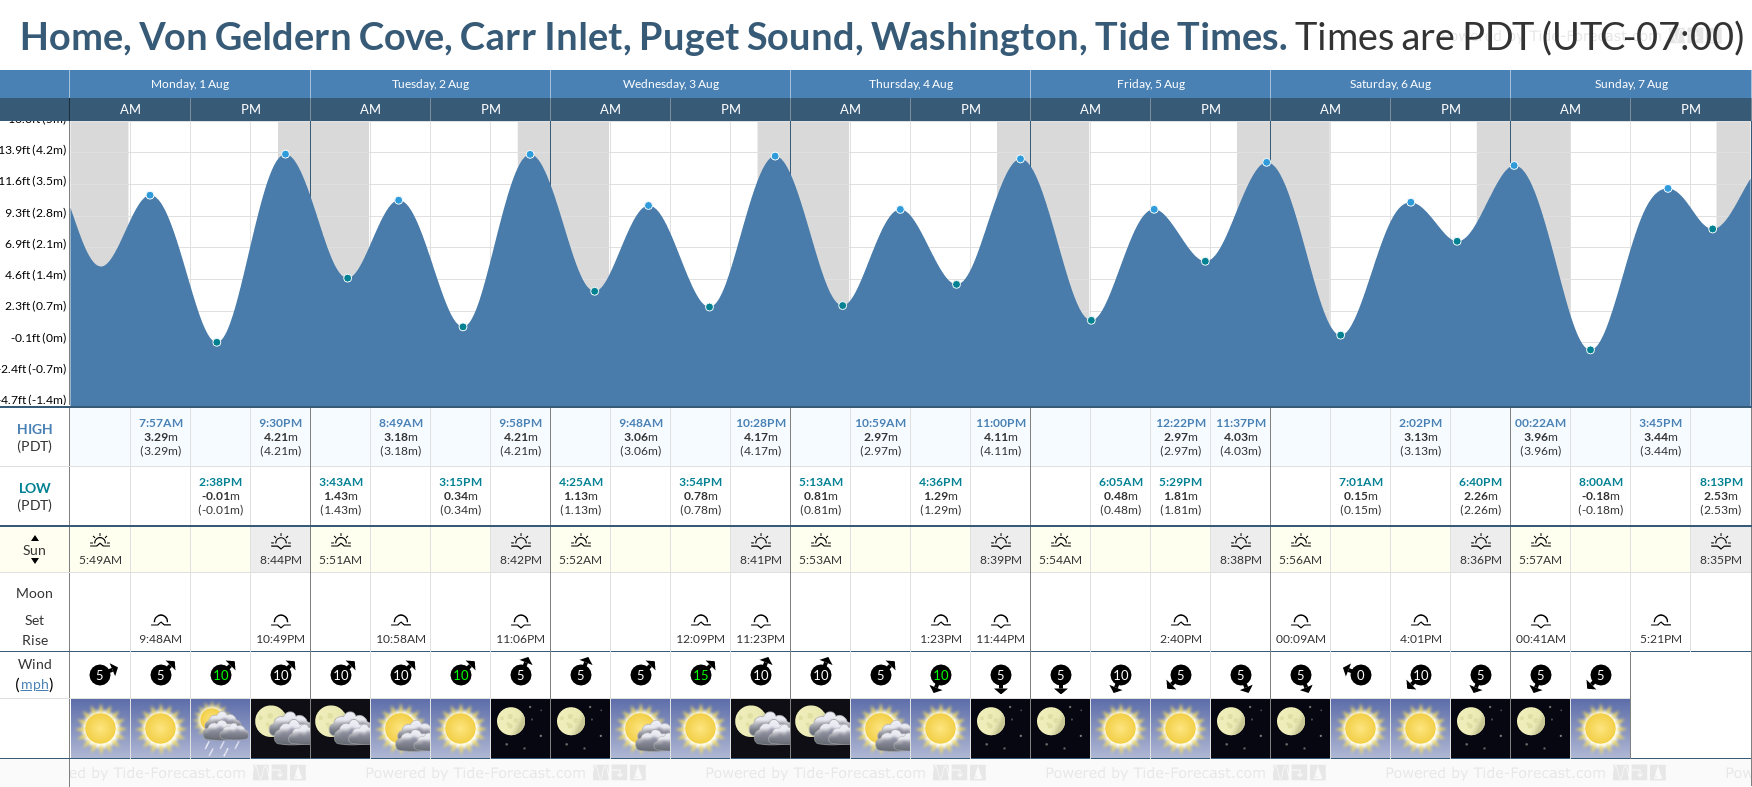 Home, Von Geldern Cove, Carr Inlet, Puget Sound, Washington Tide Chart including high and low tide tide times for the next 7 days